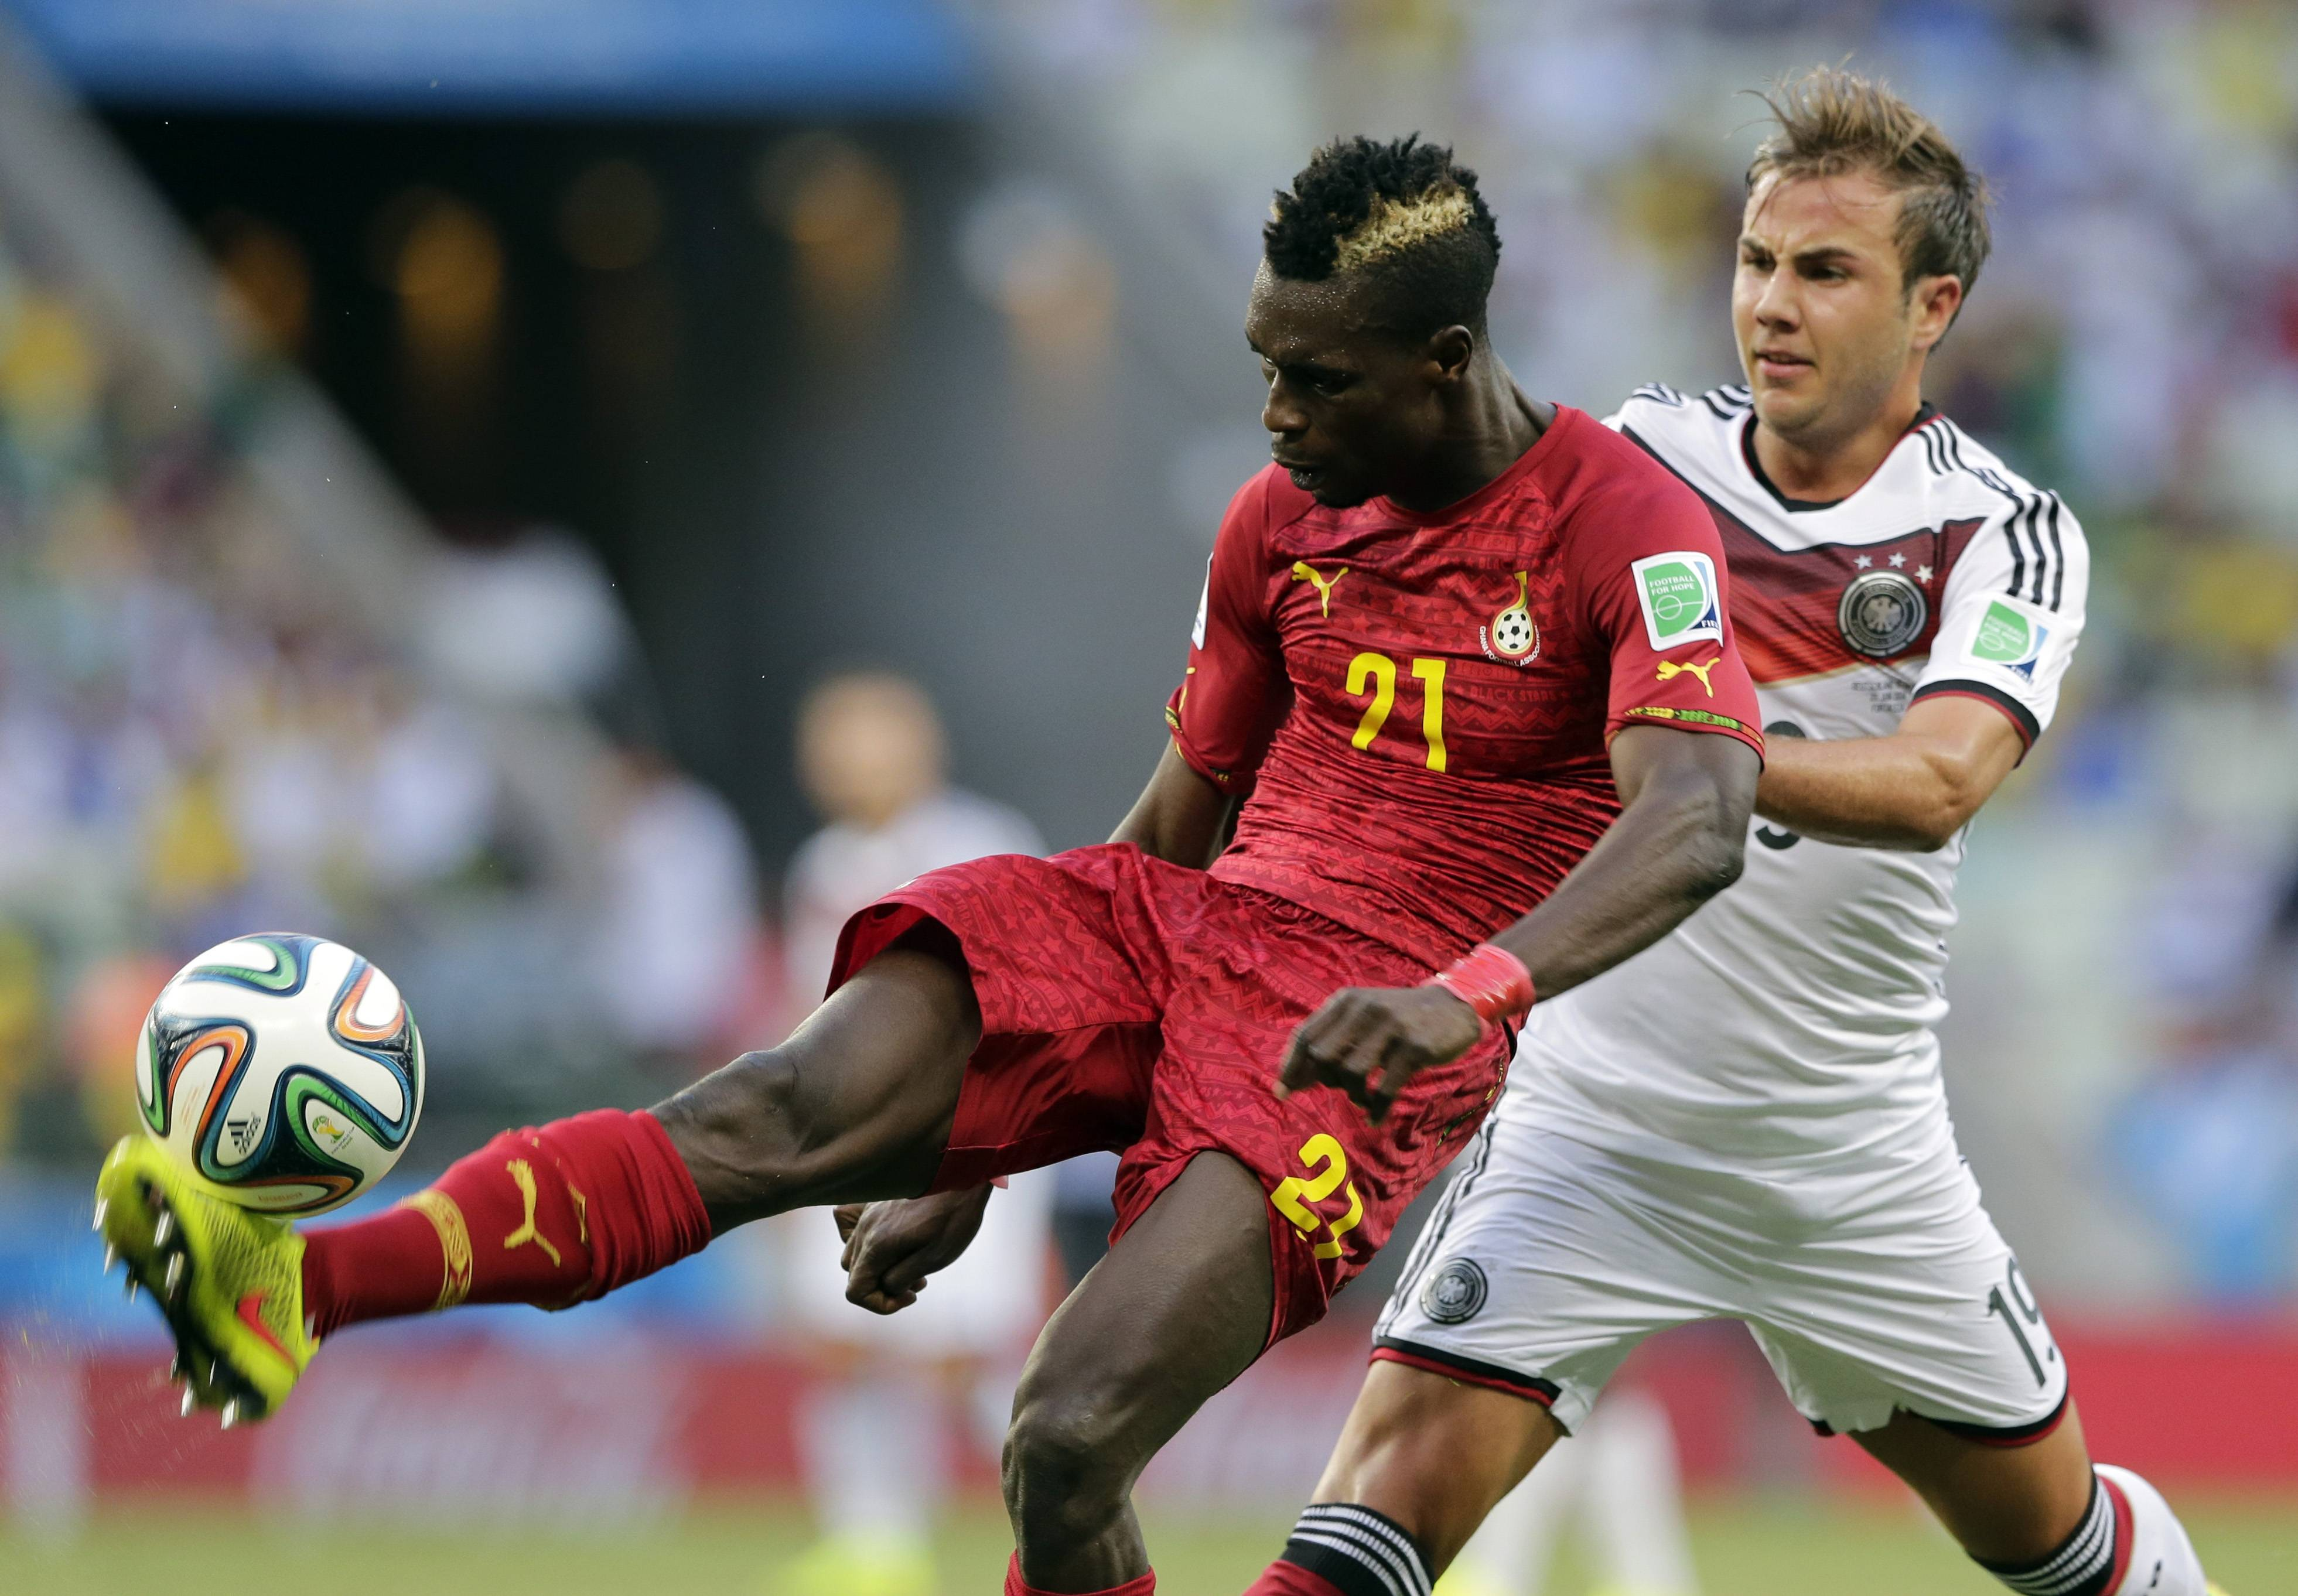 Ghana's John Boye, left, clears the ball from Germany's Mario Goetze during the group G World Cup soccer match at the Arena Castelao in Fortaleza, Brazil, Saturday, June 21, 2014.